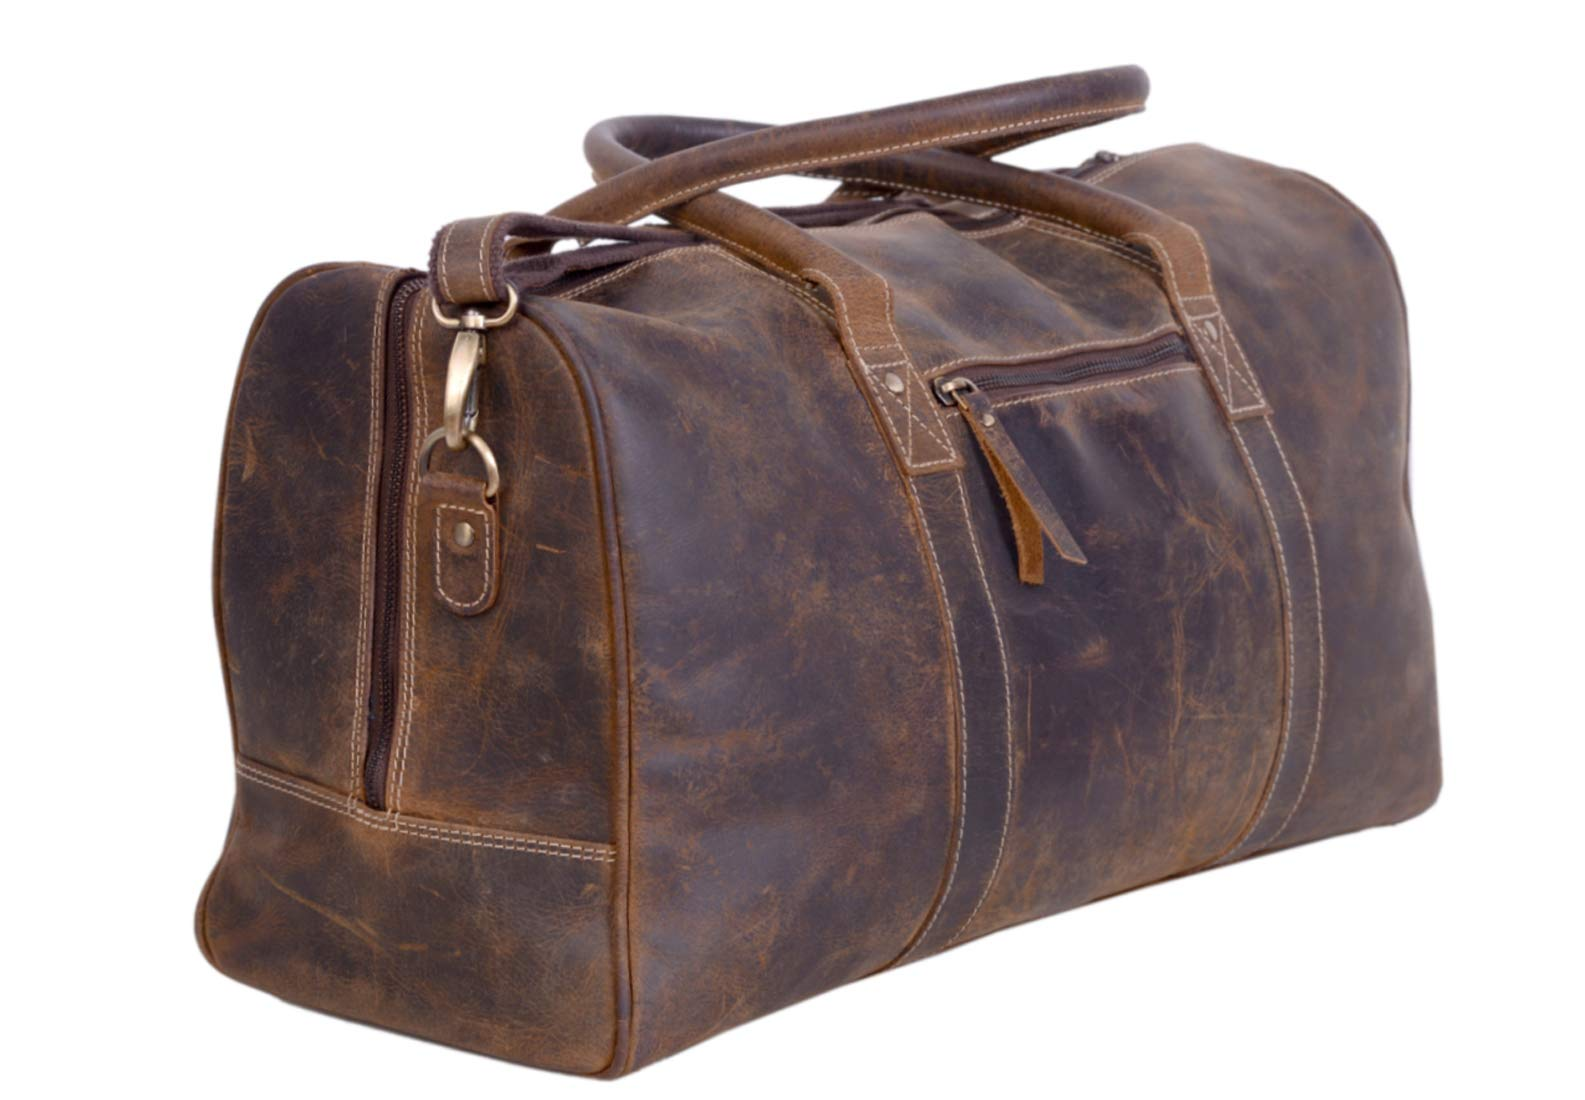 KomalC Leather Duffel Bags for Men and Women Full Grain Leather Travel Overnight Weekend Leather Bags Sports Gym Duffel for Men (24 Inch) by KomalC